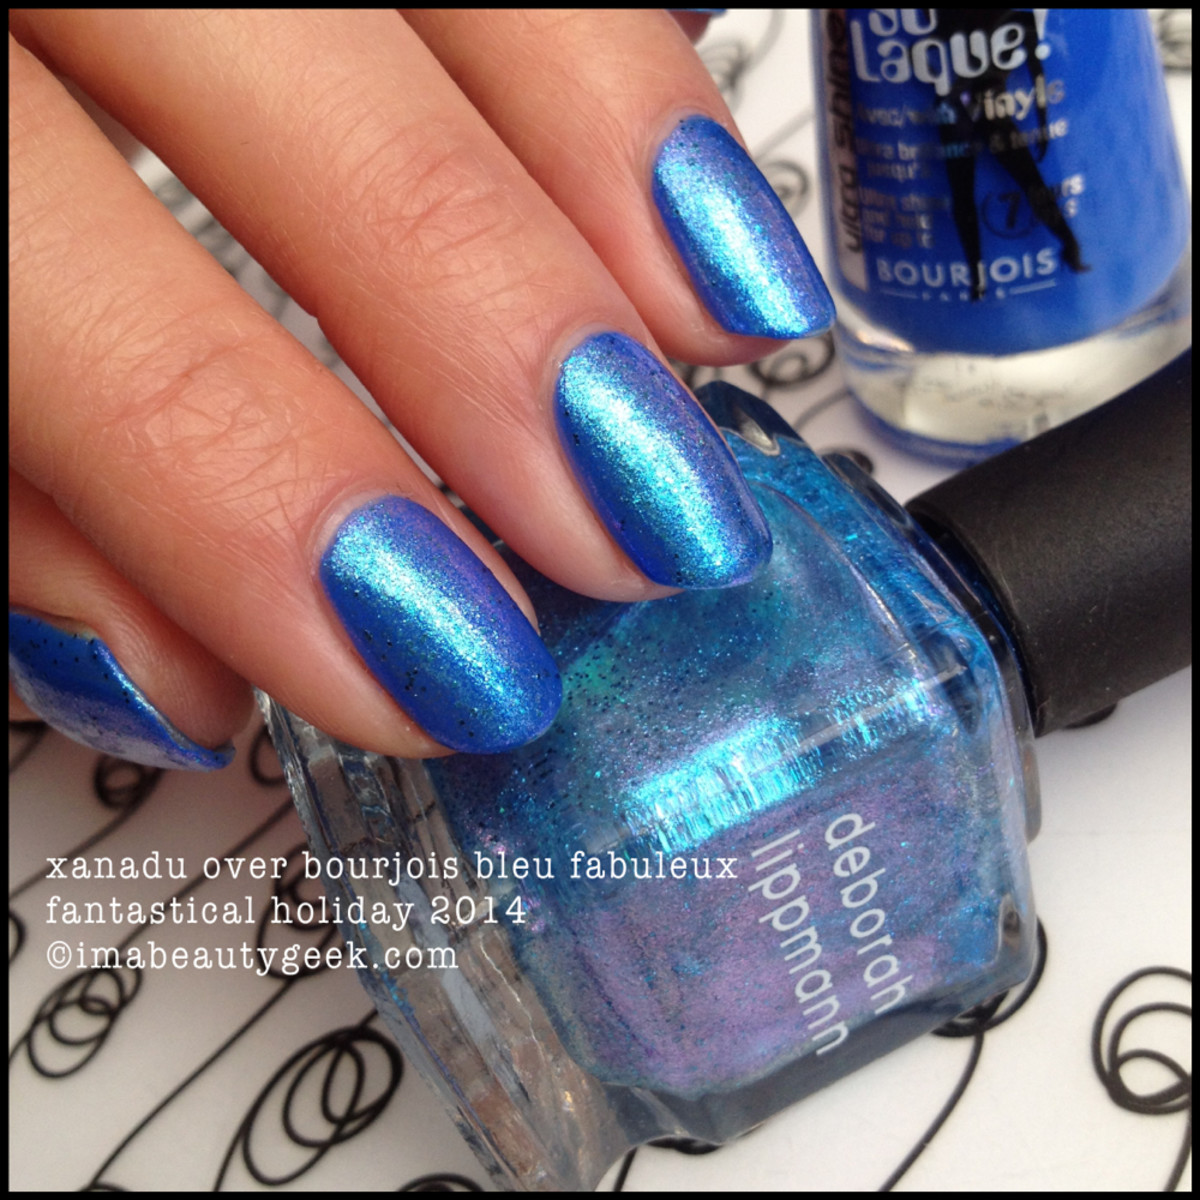 Deborah Lippmann Xanadu over Bleu Fabuleux Fantastical Holiday 2014